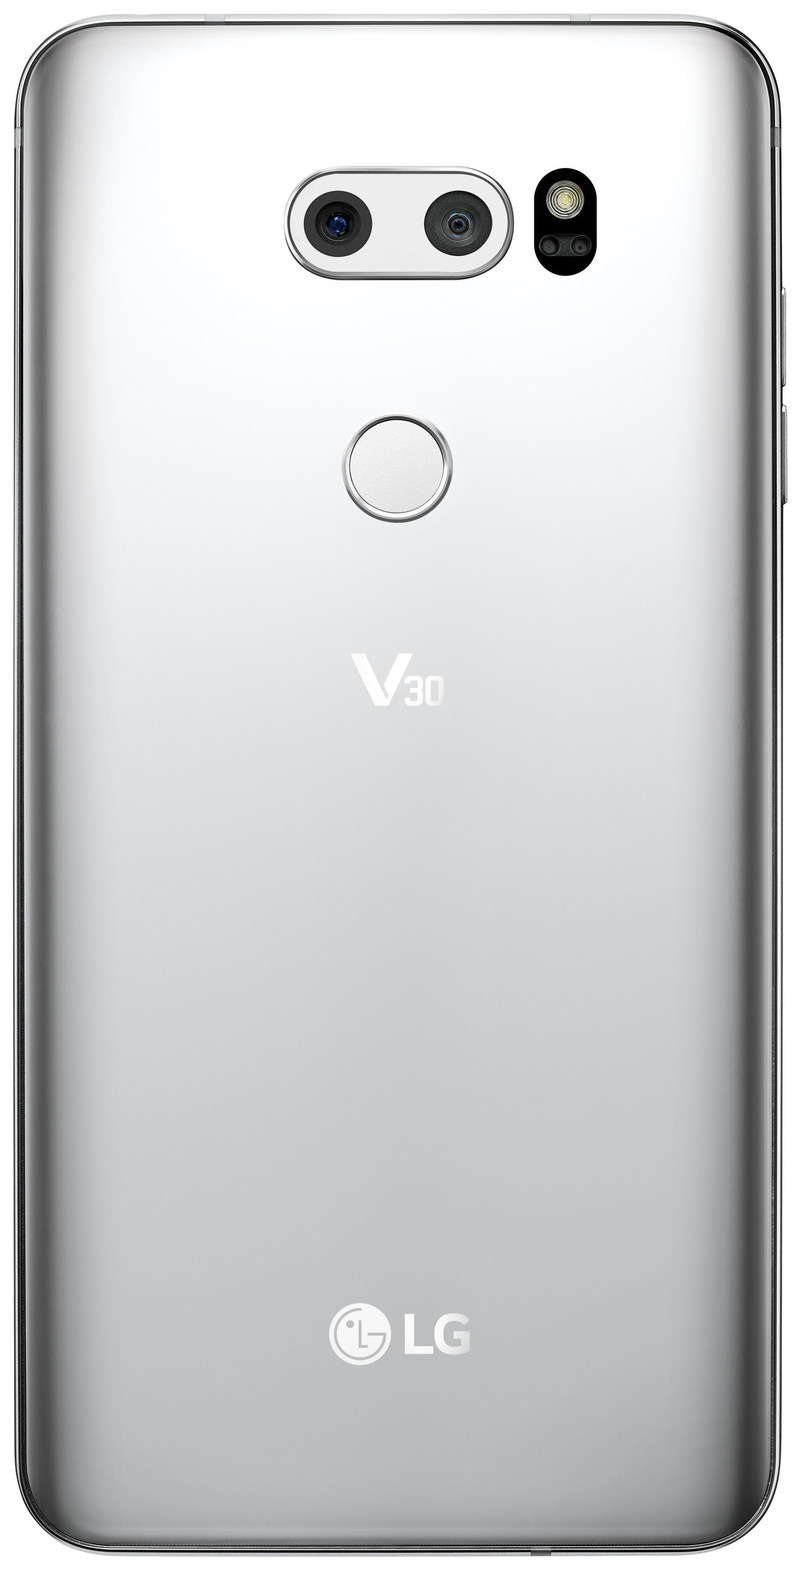 LG V30 brings professional video capabilities to the masses